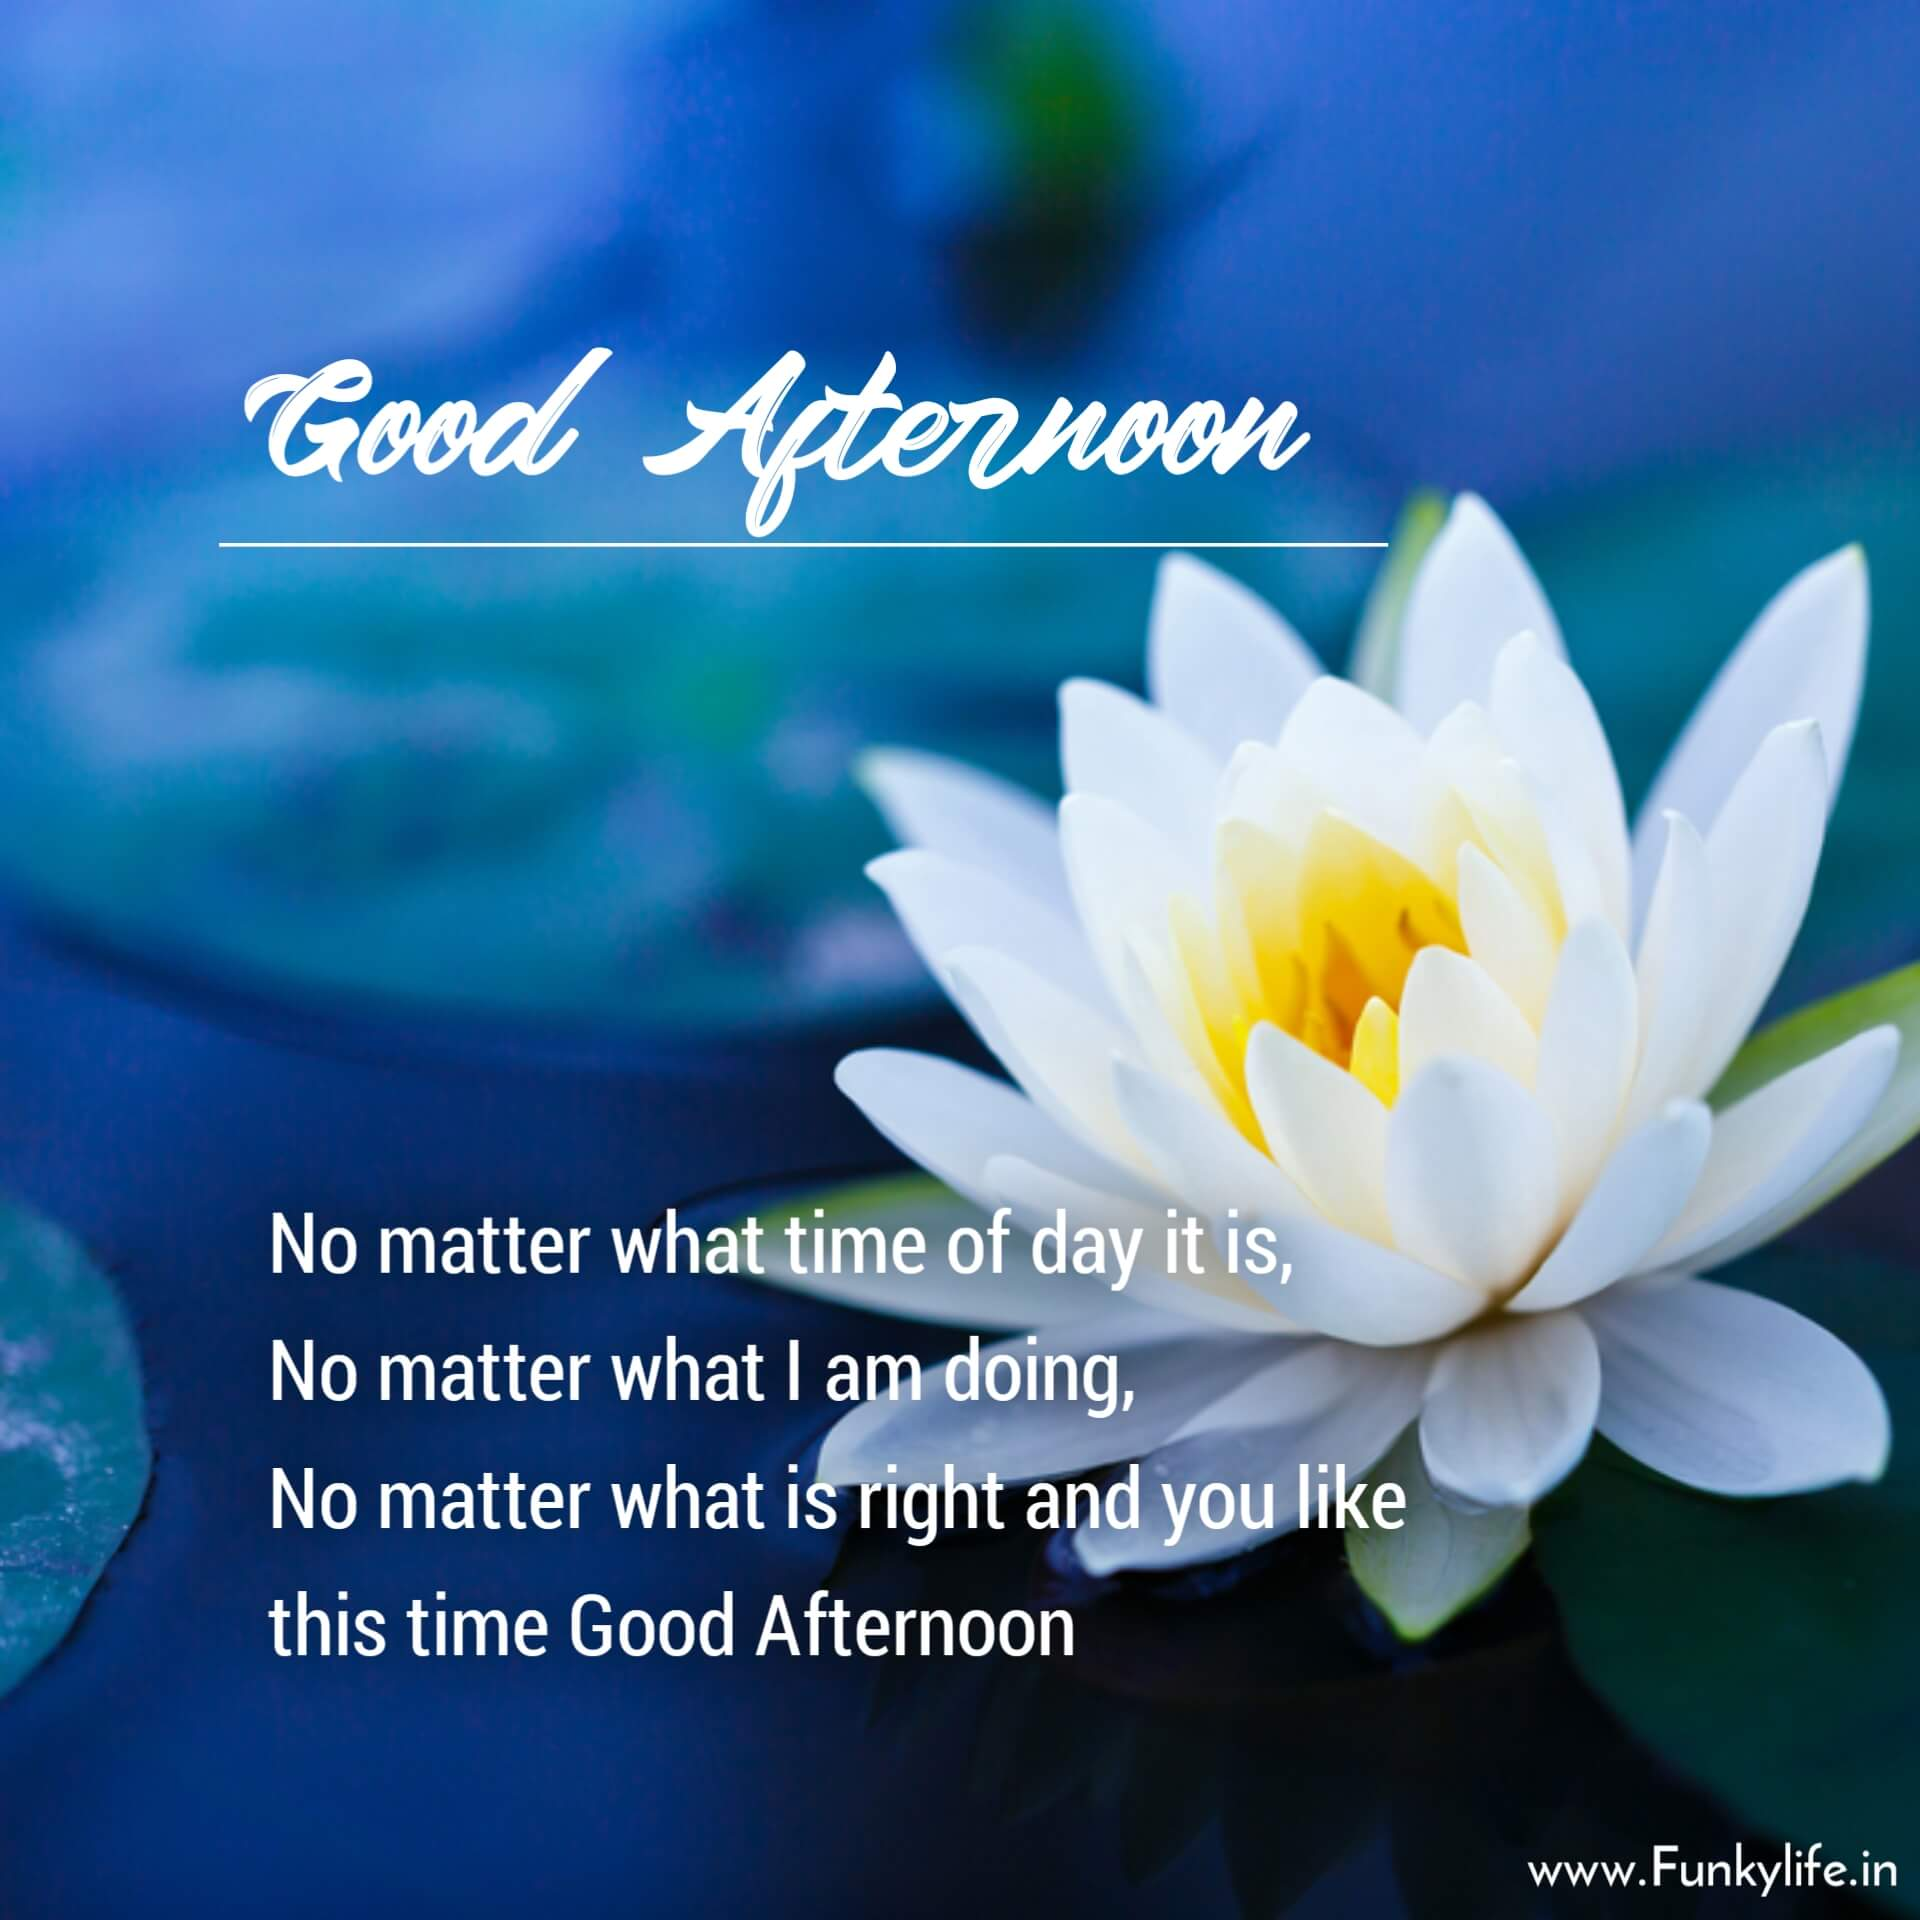 Good Afternoon Images with Quotes